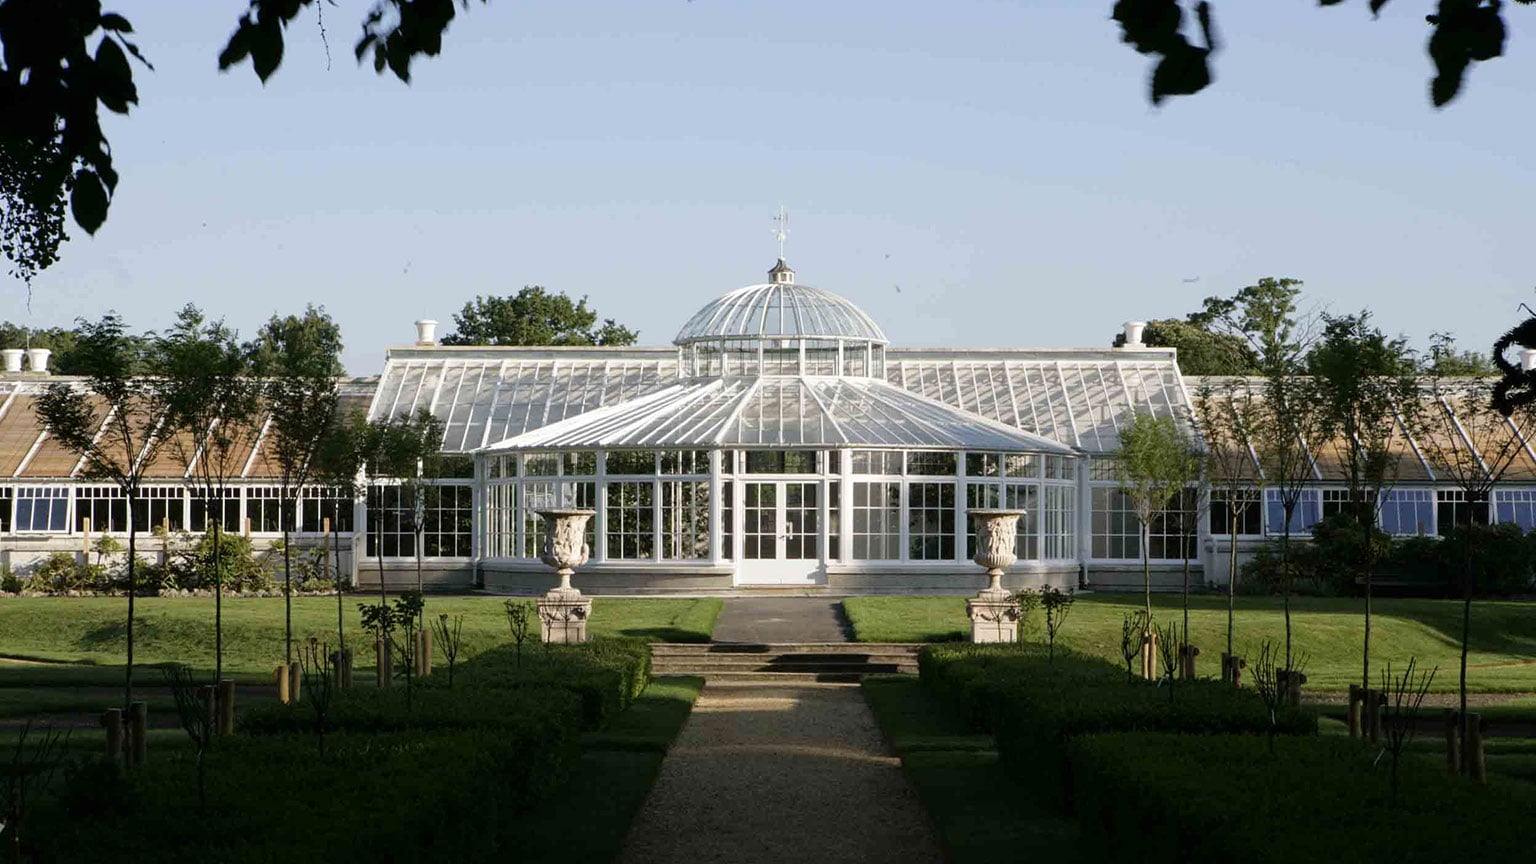 Chiswick House conservatory - © Clive Boursnell